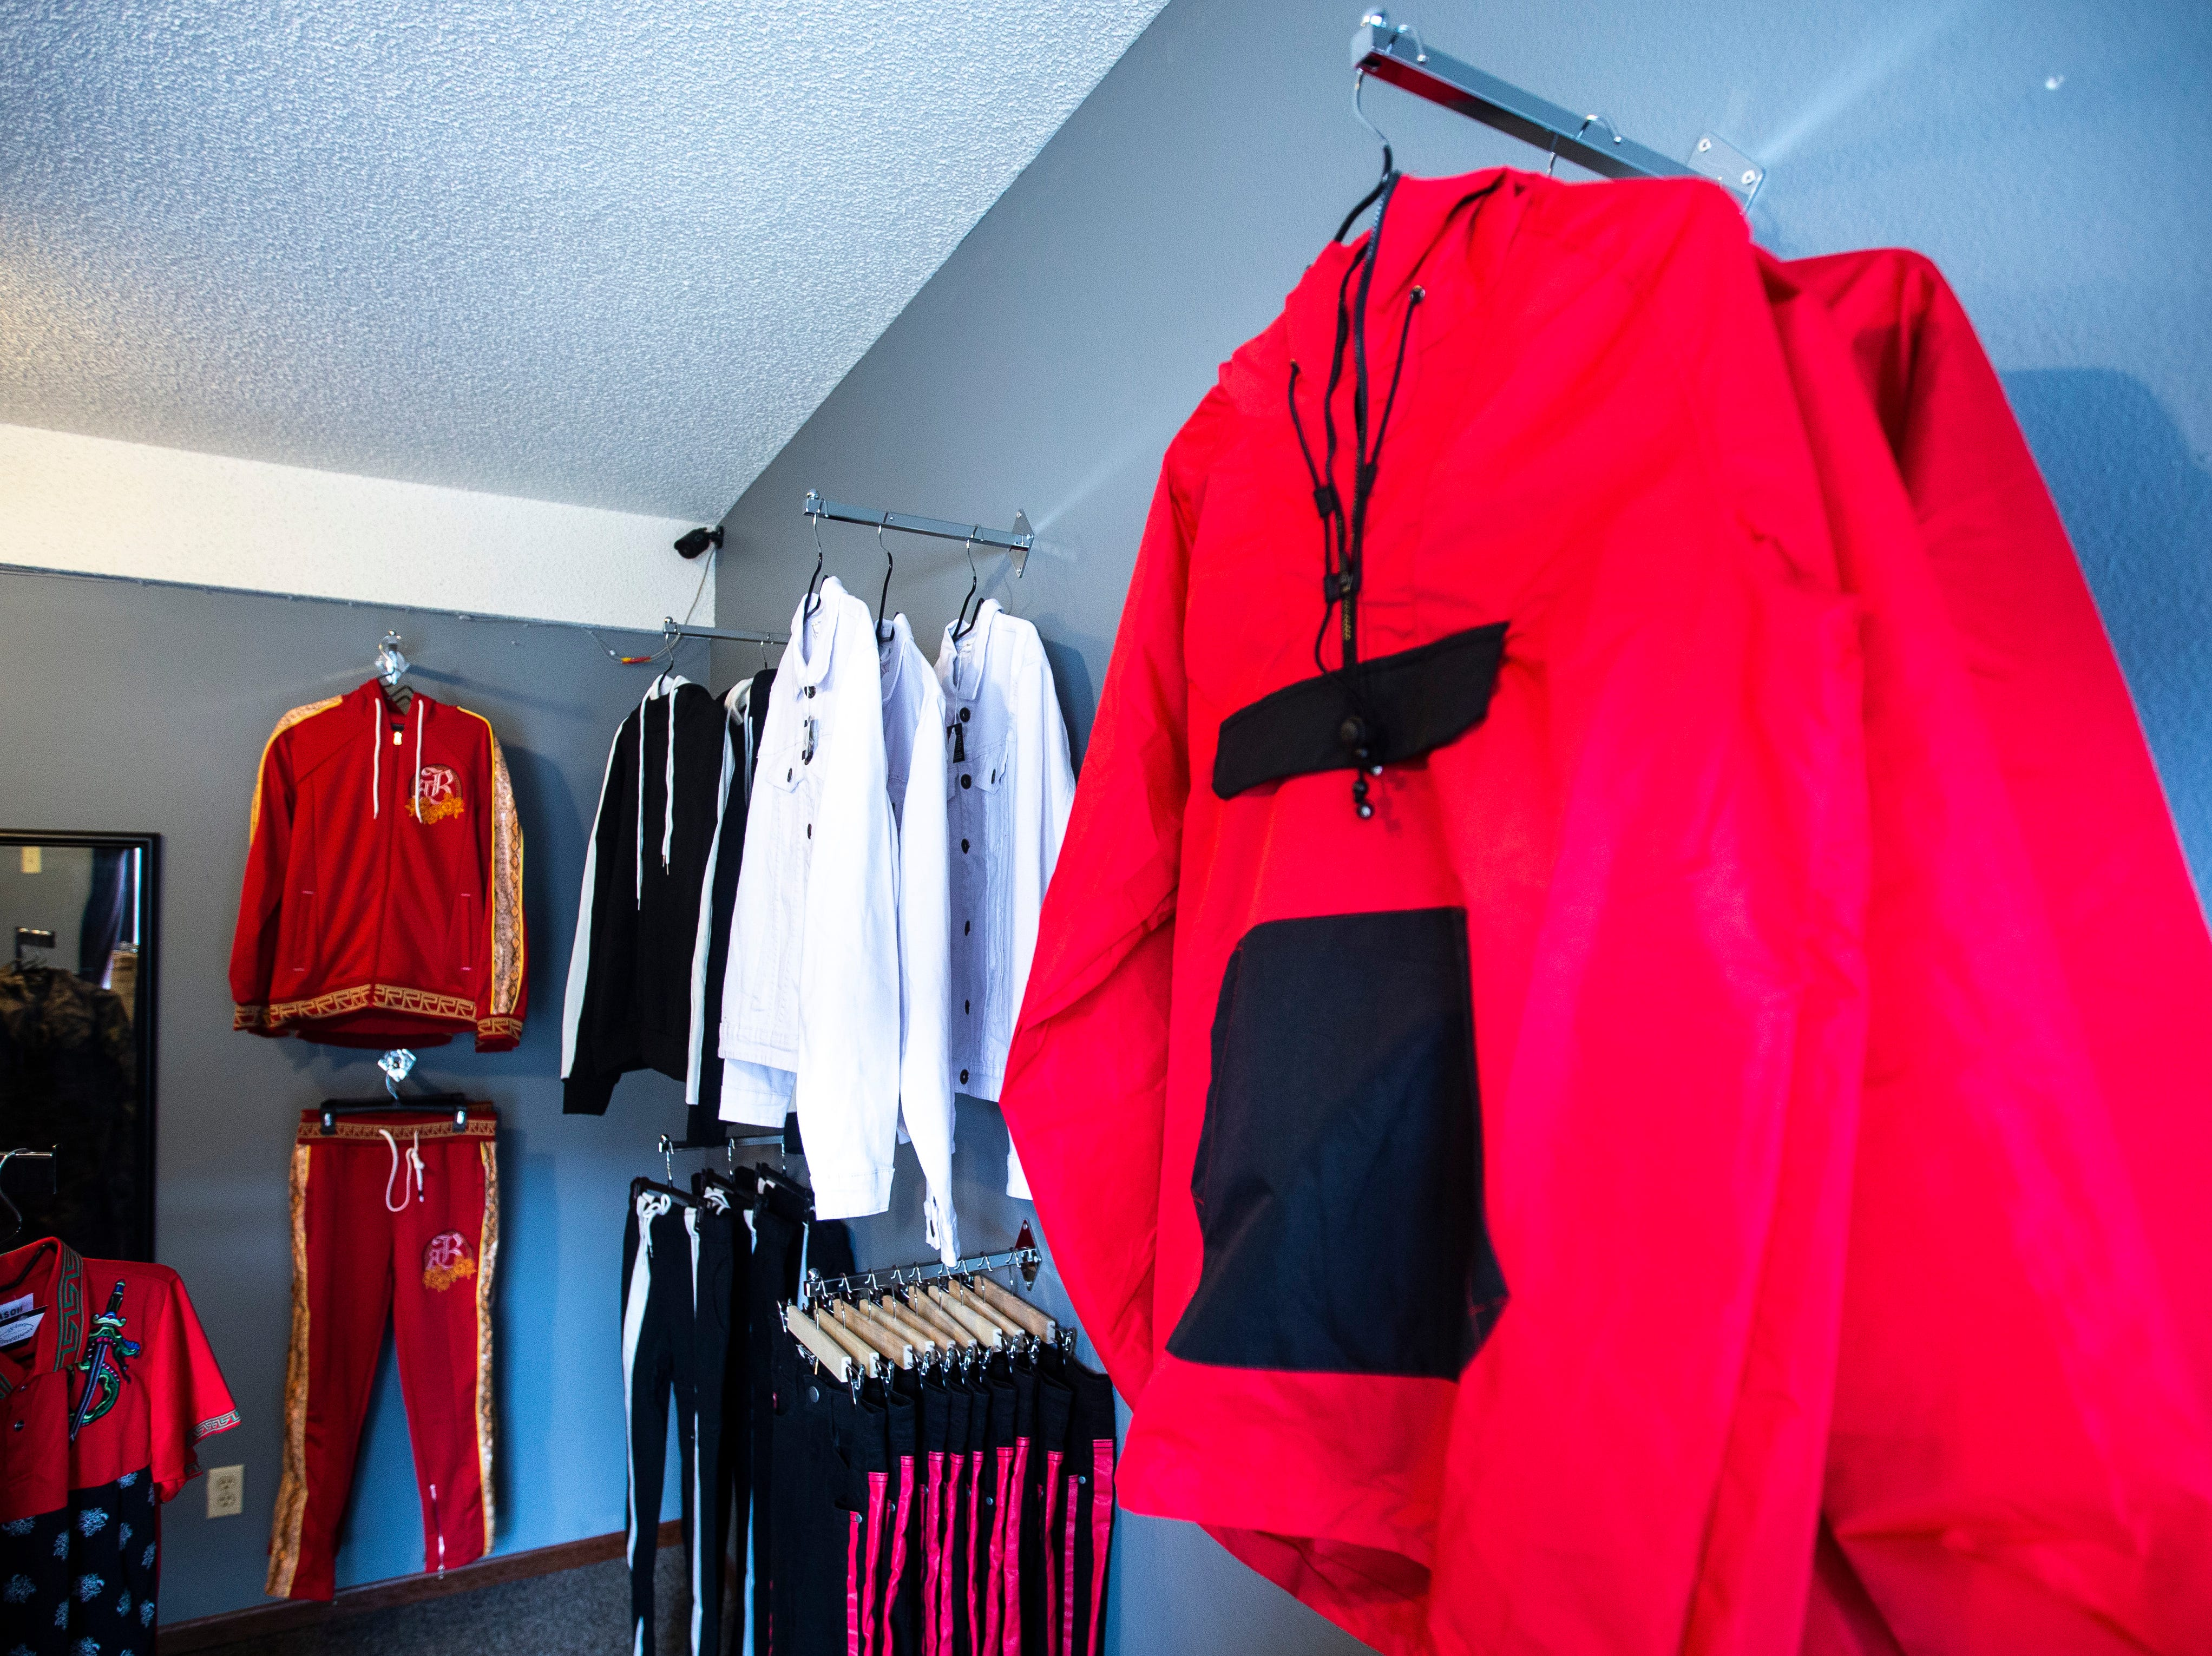 Jackets and jumpsuits hang on racks on Tuesday, Feb. 26, 2019, inside Finer Streetwear Co. at 441 Highway 1 West in Iowa City, Iowa.